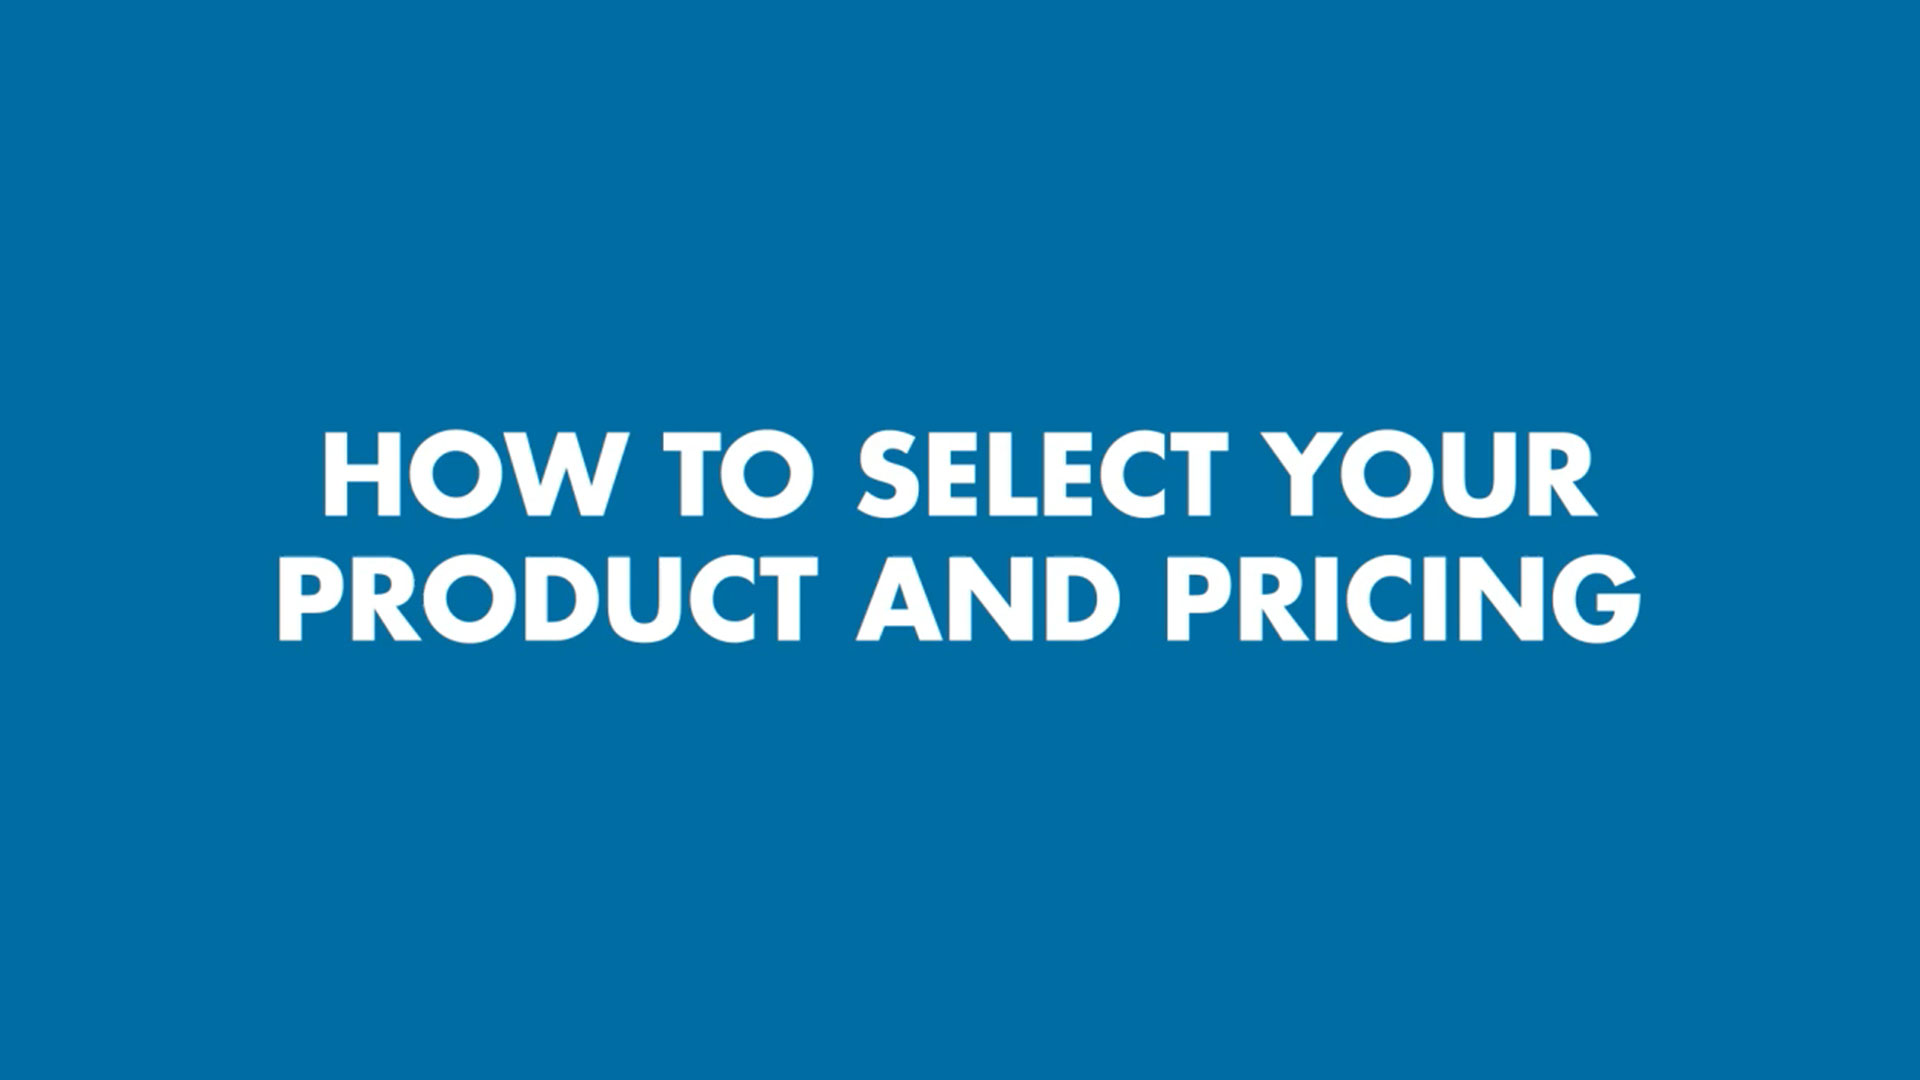 HowToSelectYourProductAndPricing